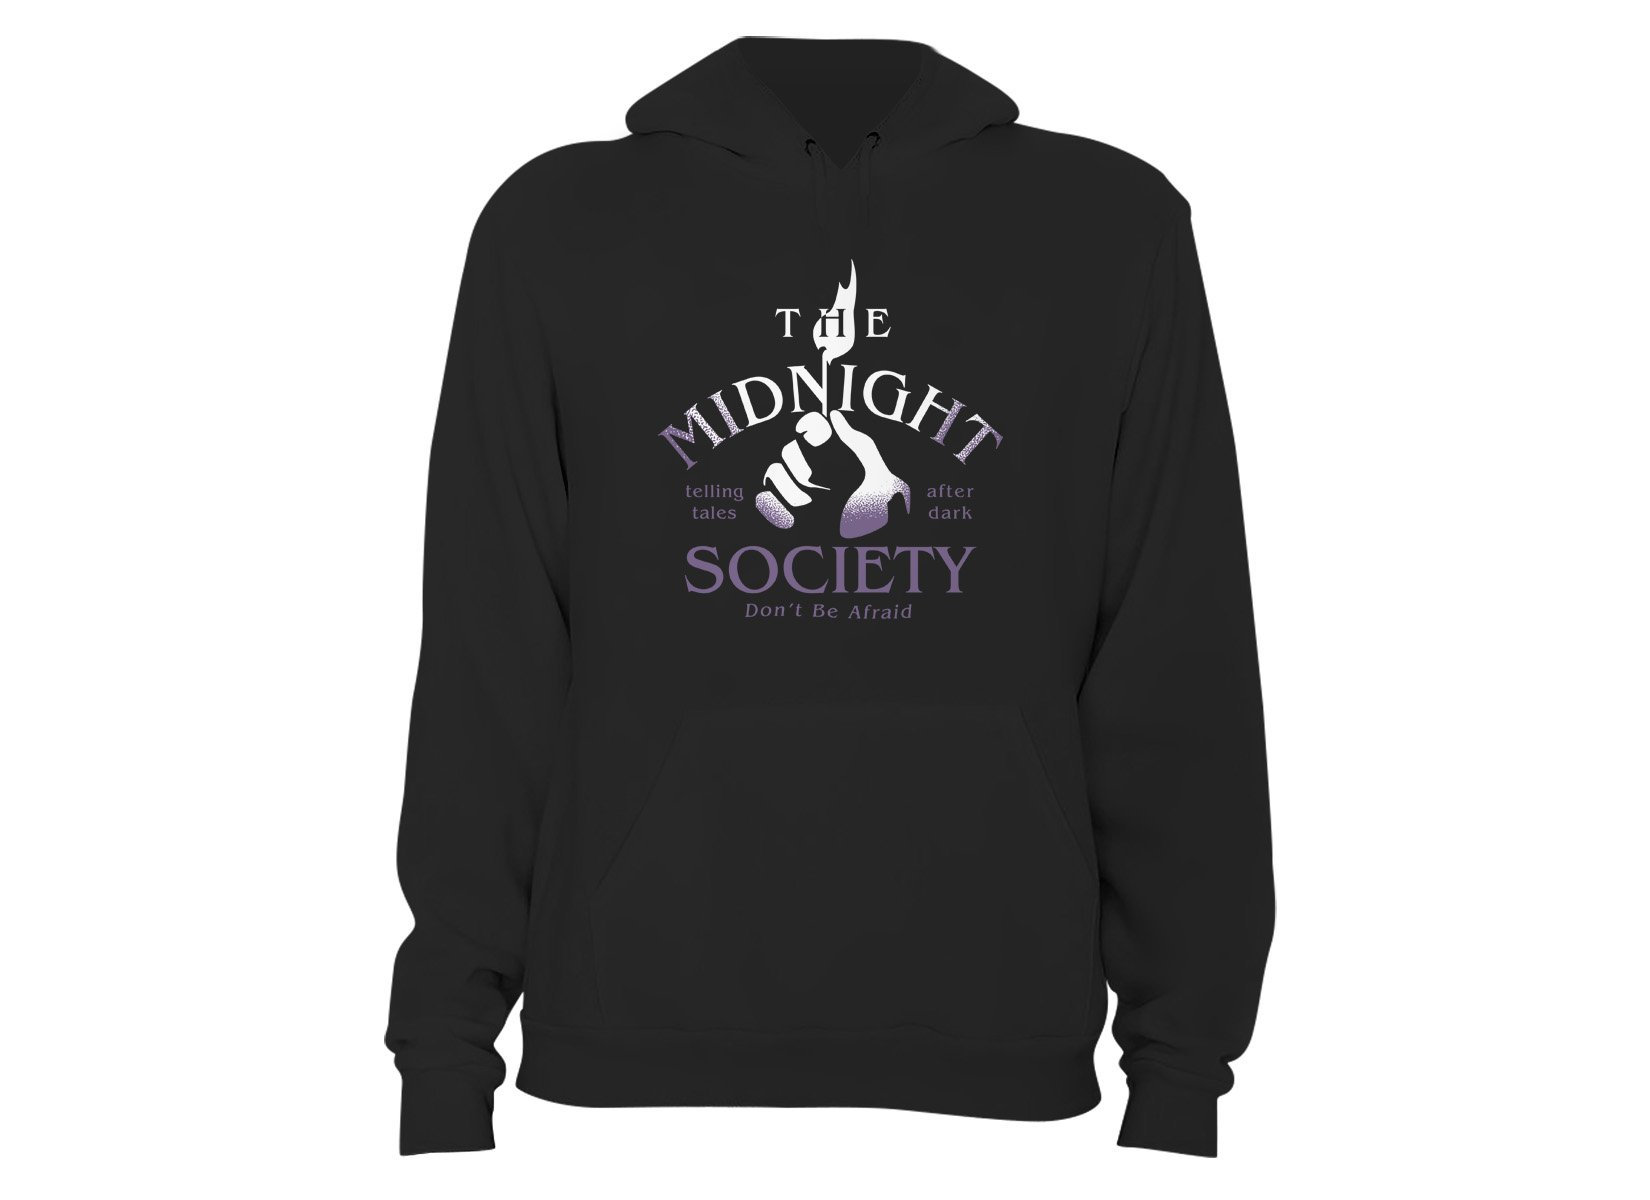 The Midnight Society on Hoodie